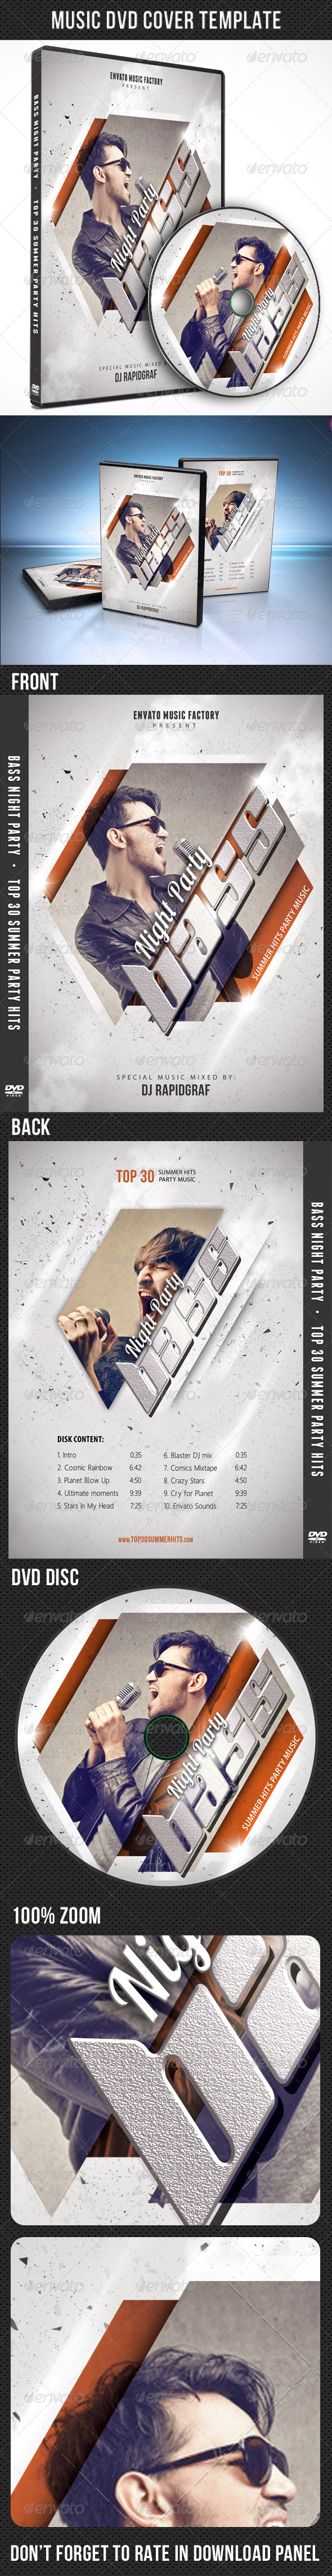 GraphicRiver Music DVD Cover Template V03 7908880